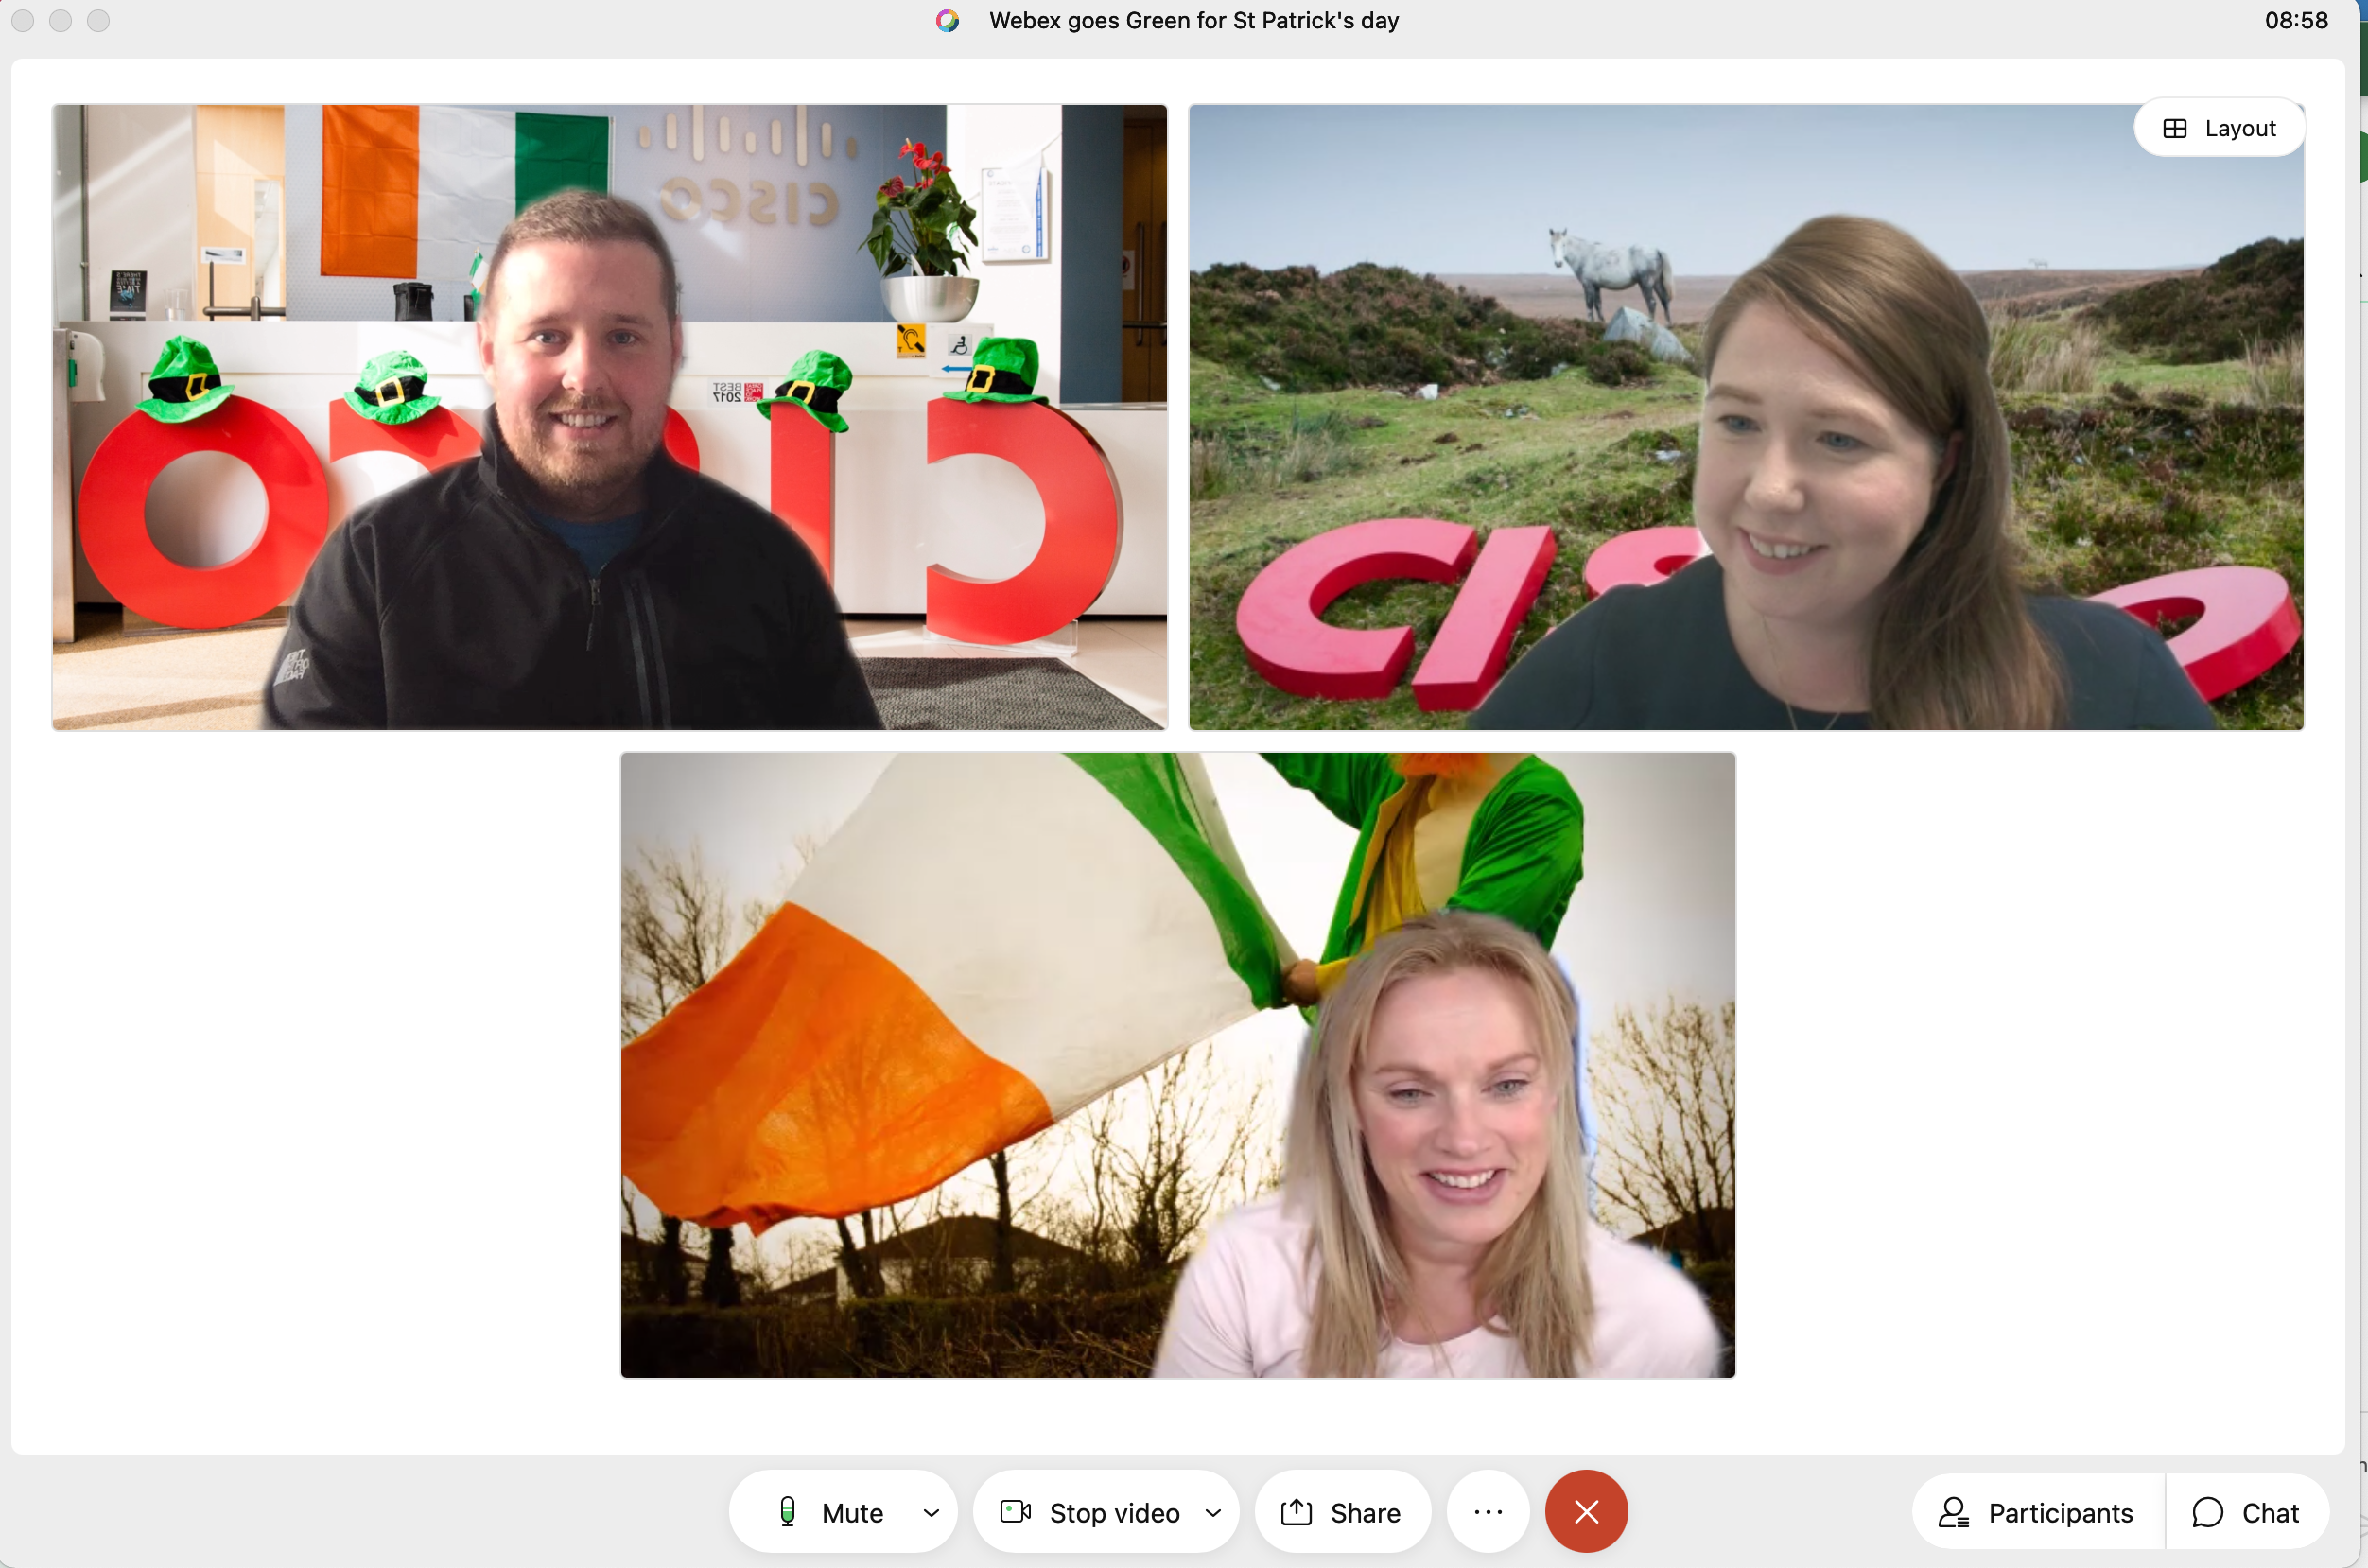 Co-workers at Cisco using Irish backgrounds in their meeting